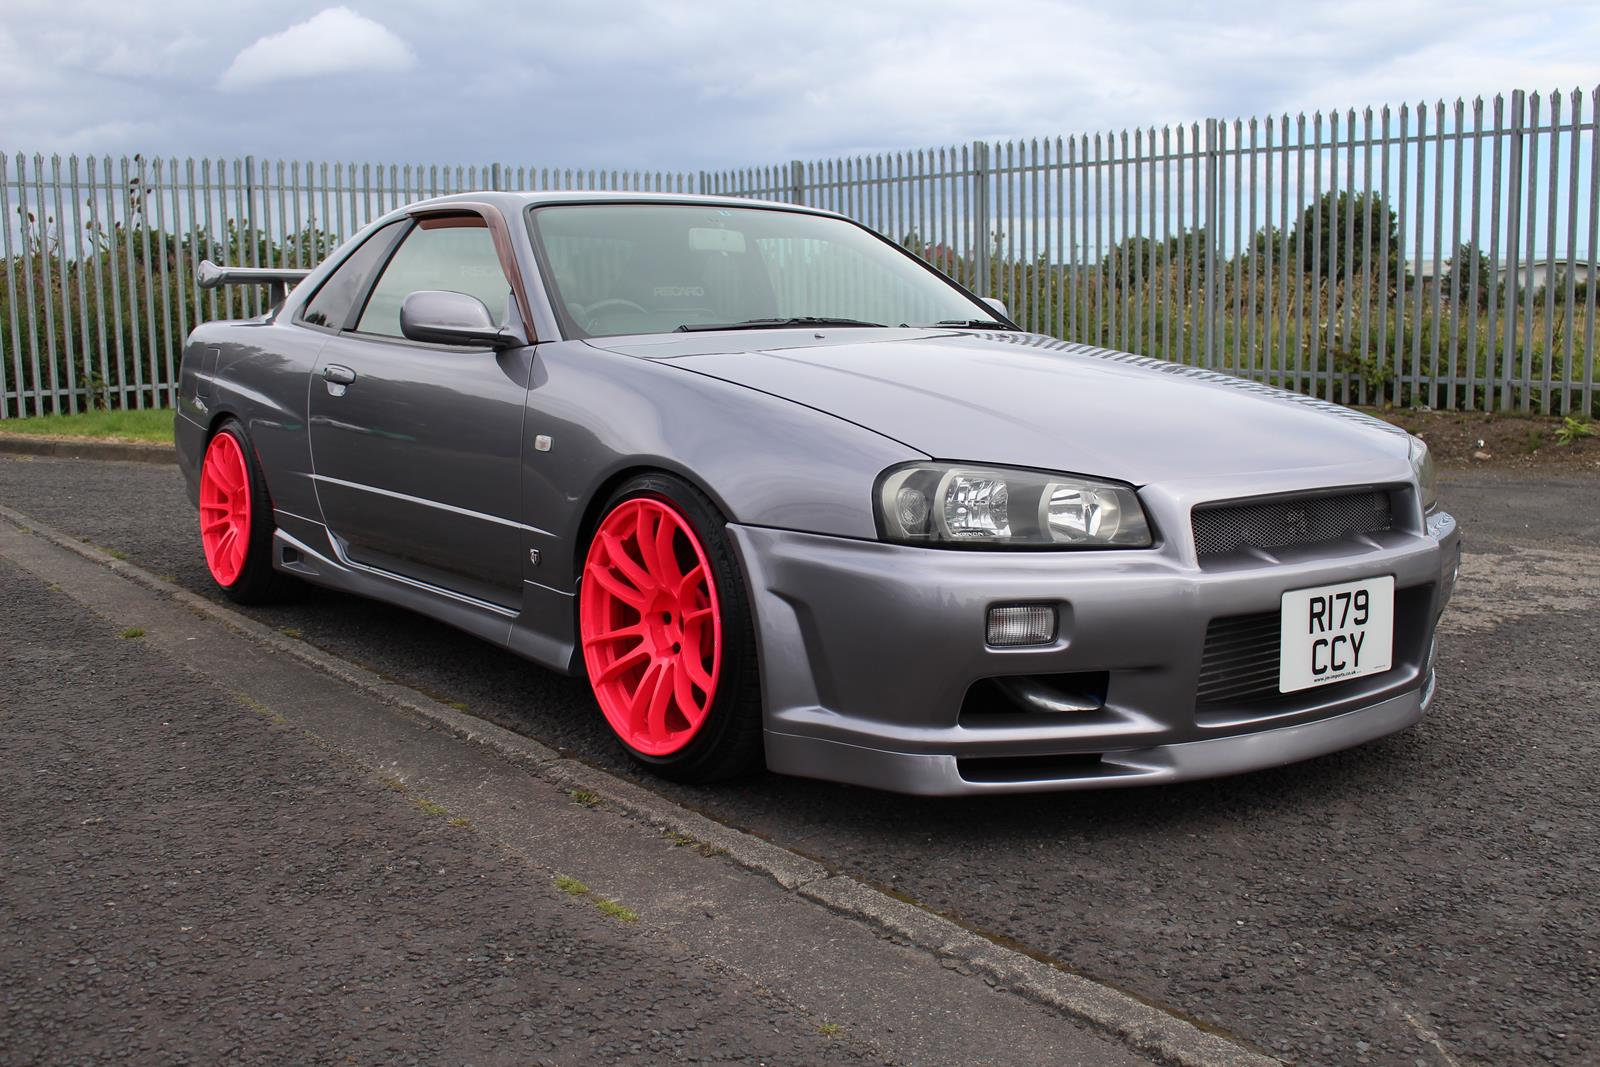 1998 nissan skyline r34 gt t 400ps gtr front. Black Bedroom Furniture Sets. Home Design Ideas